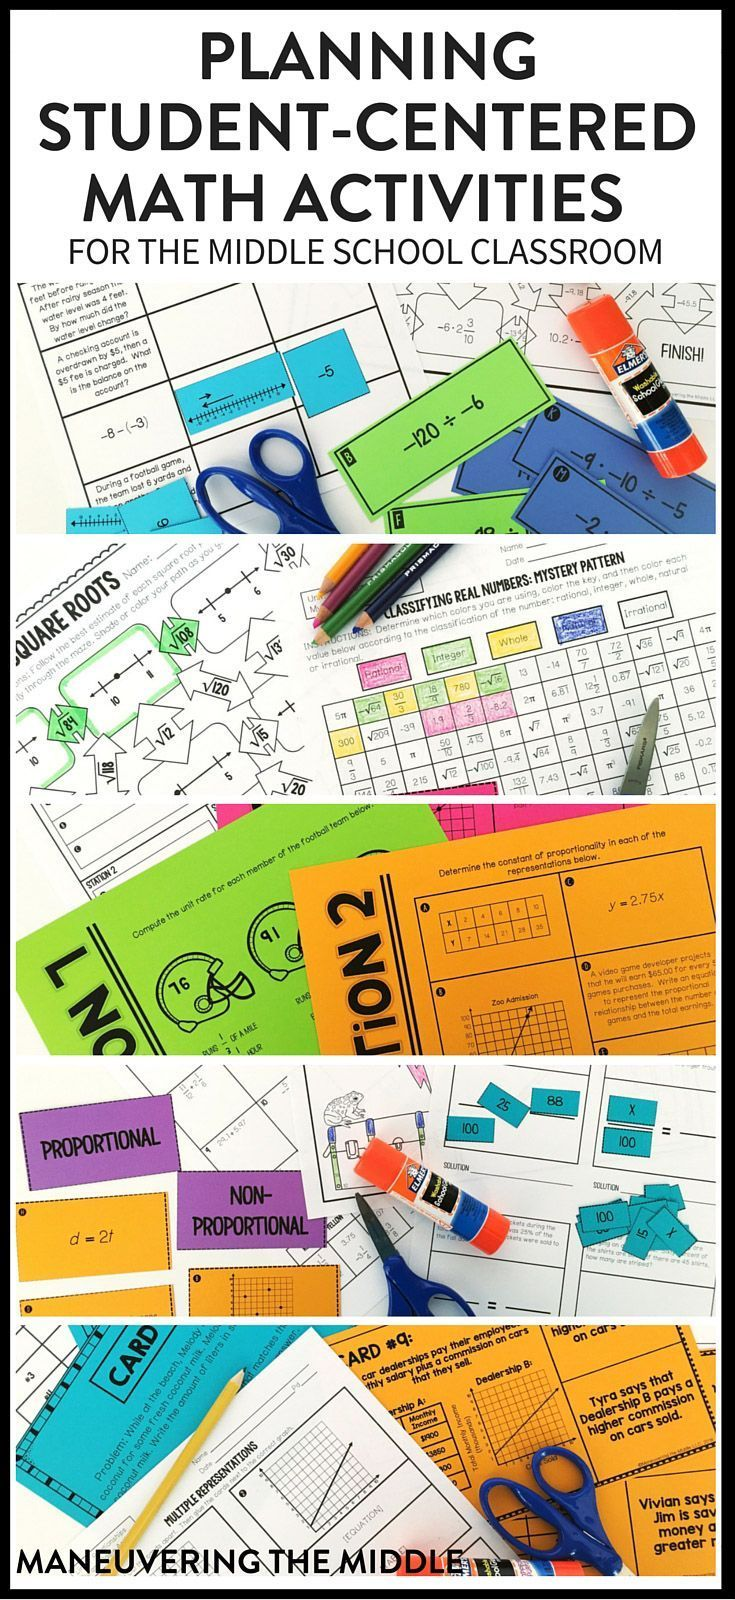 How to plan student centered math activities middle school maths hands on math activities that are easy to plan and implement for all student levels utilize these middle school math activities in 6th grade 7th grade fandeluxe Gallery